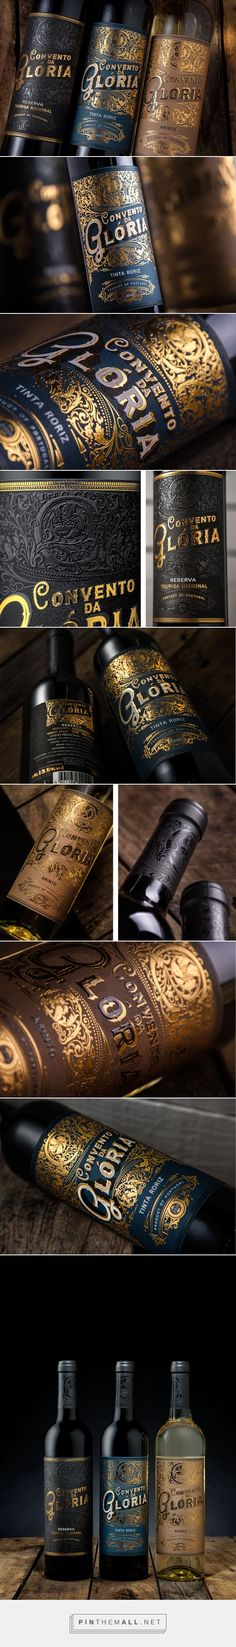 Convento da Gloria Wine Packaging by MA Creative Agency | Fivestar Branding – Design and Branding Agency & Inspiration Gallery